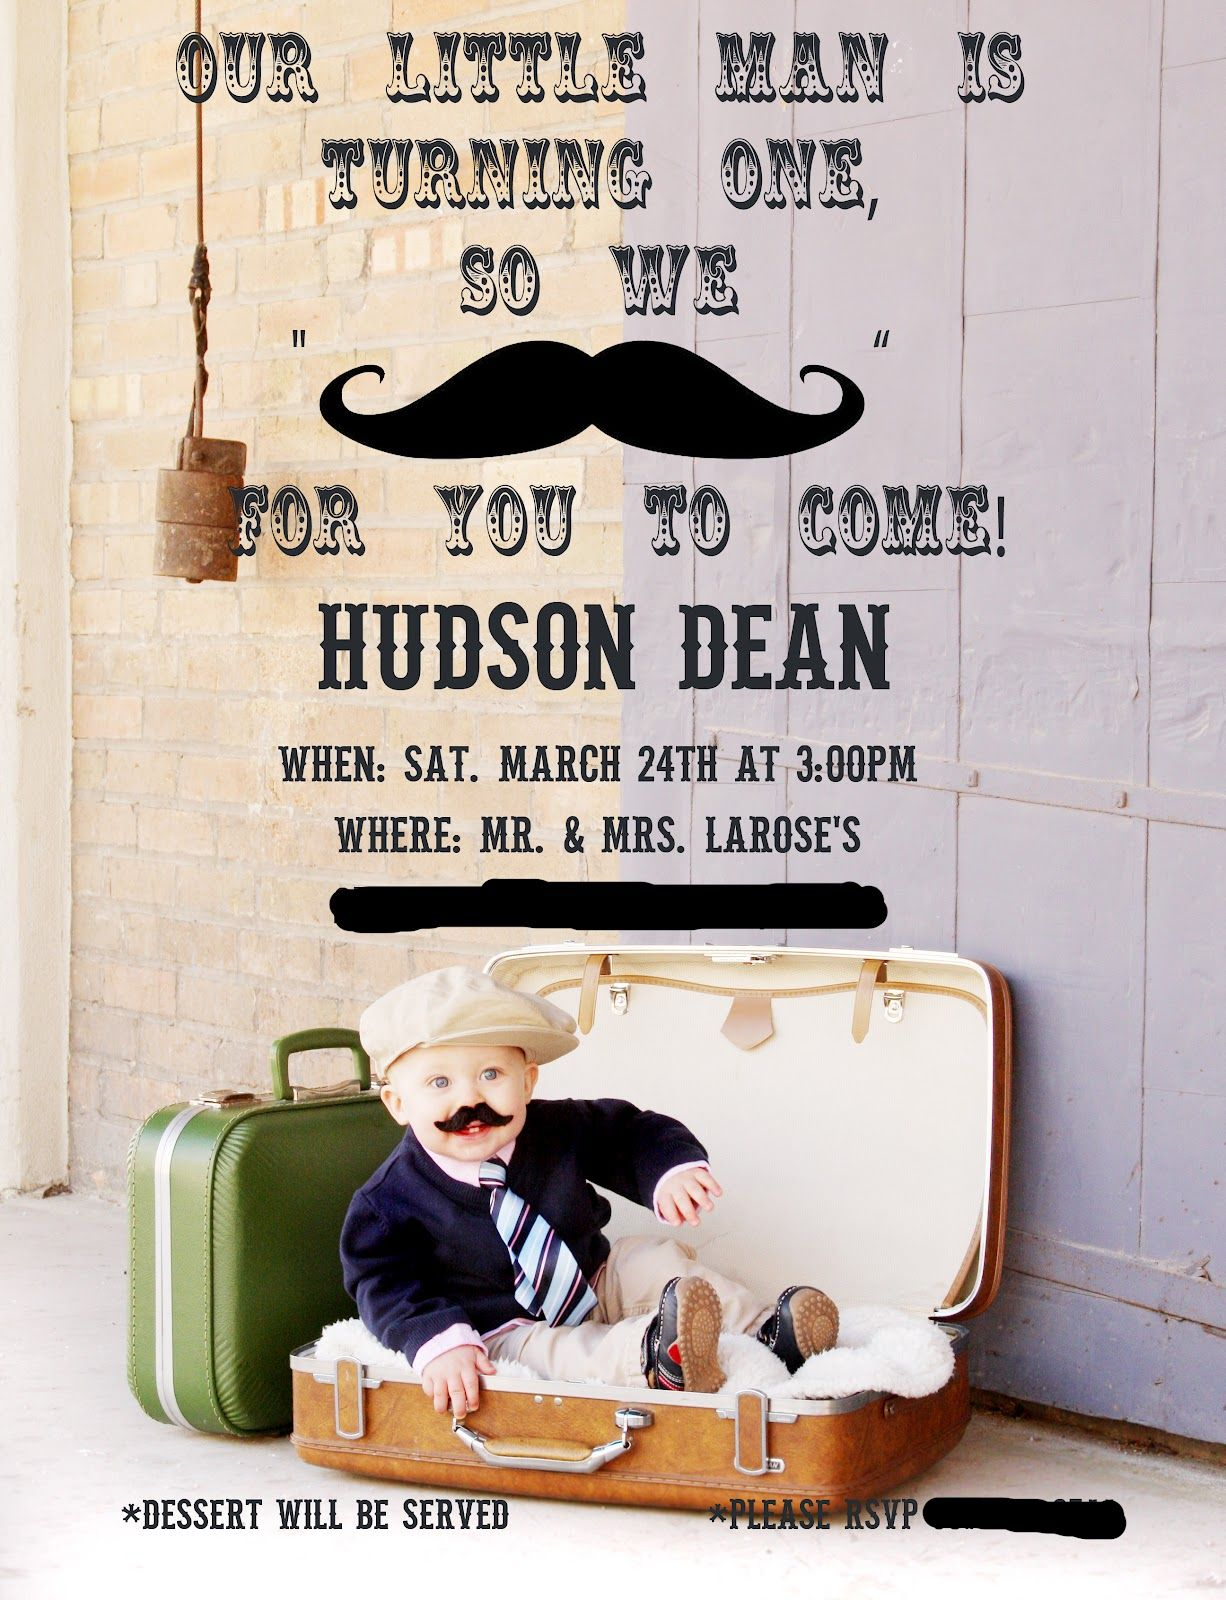 mustache cake ideas | made this cute invitation using Adobe ...